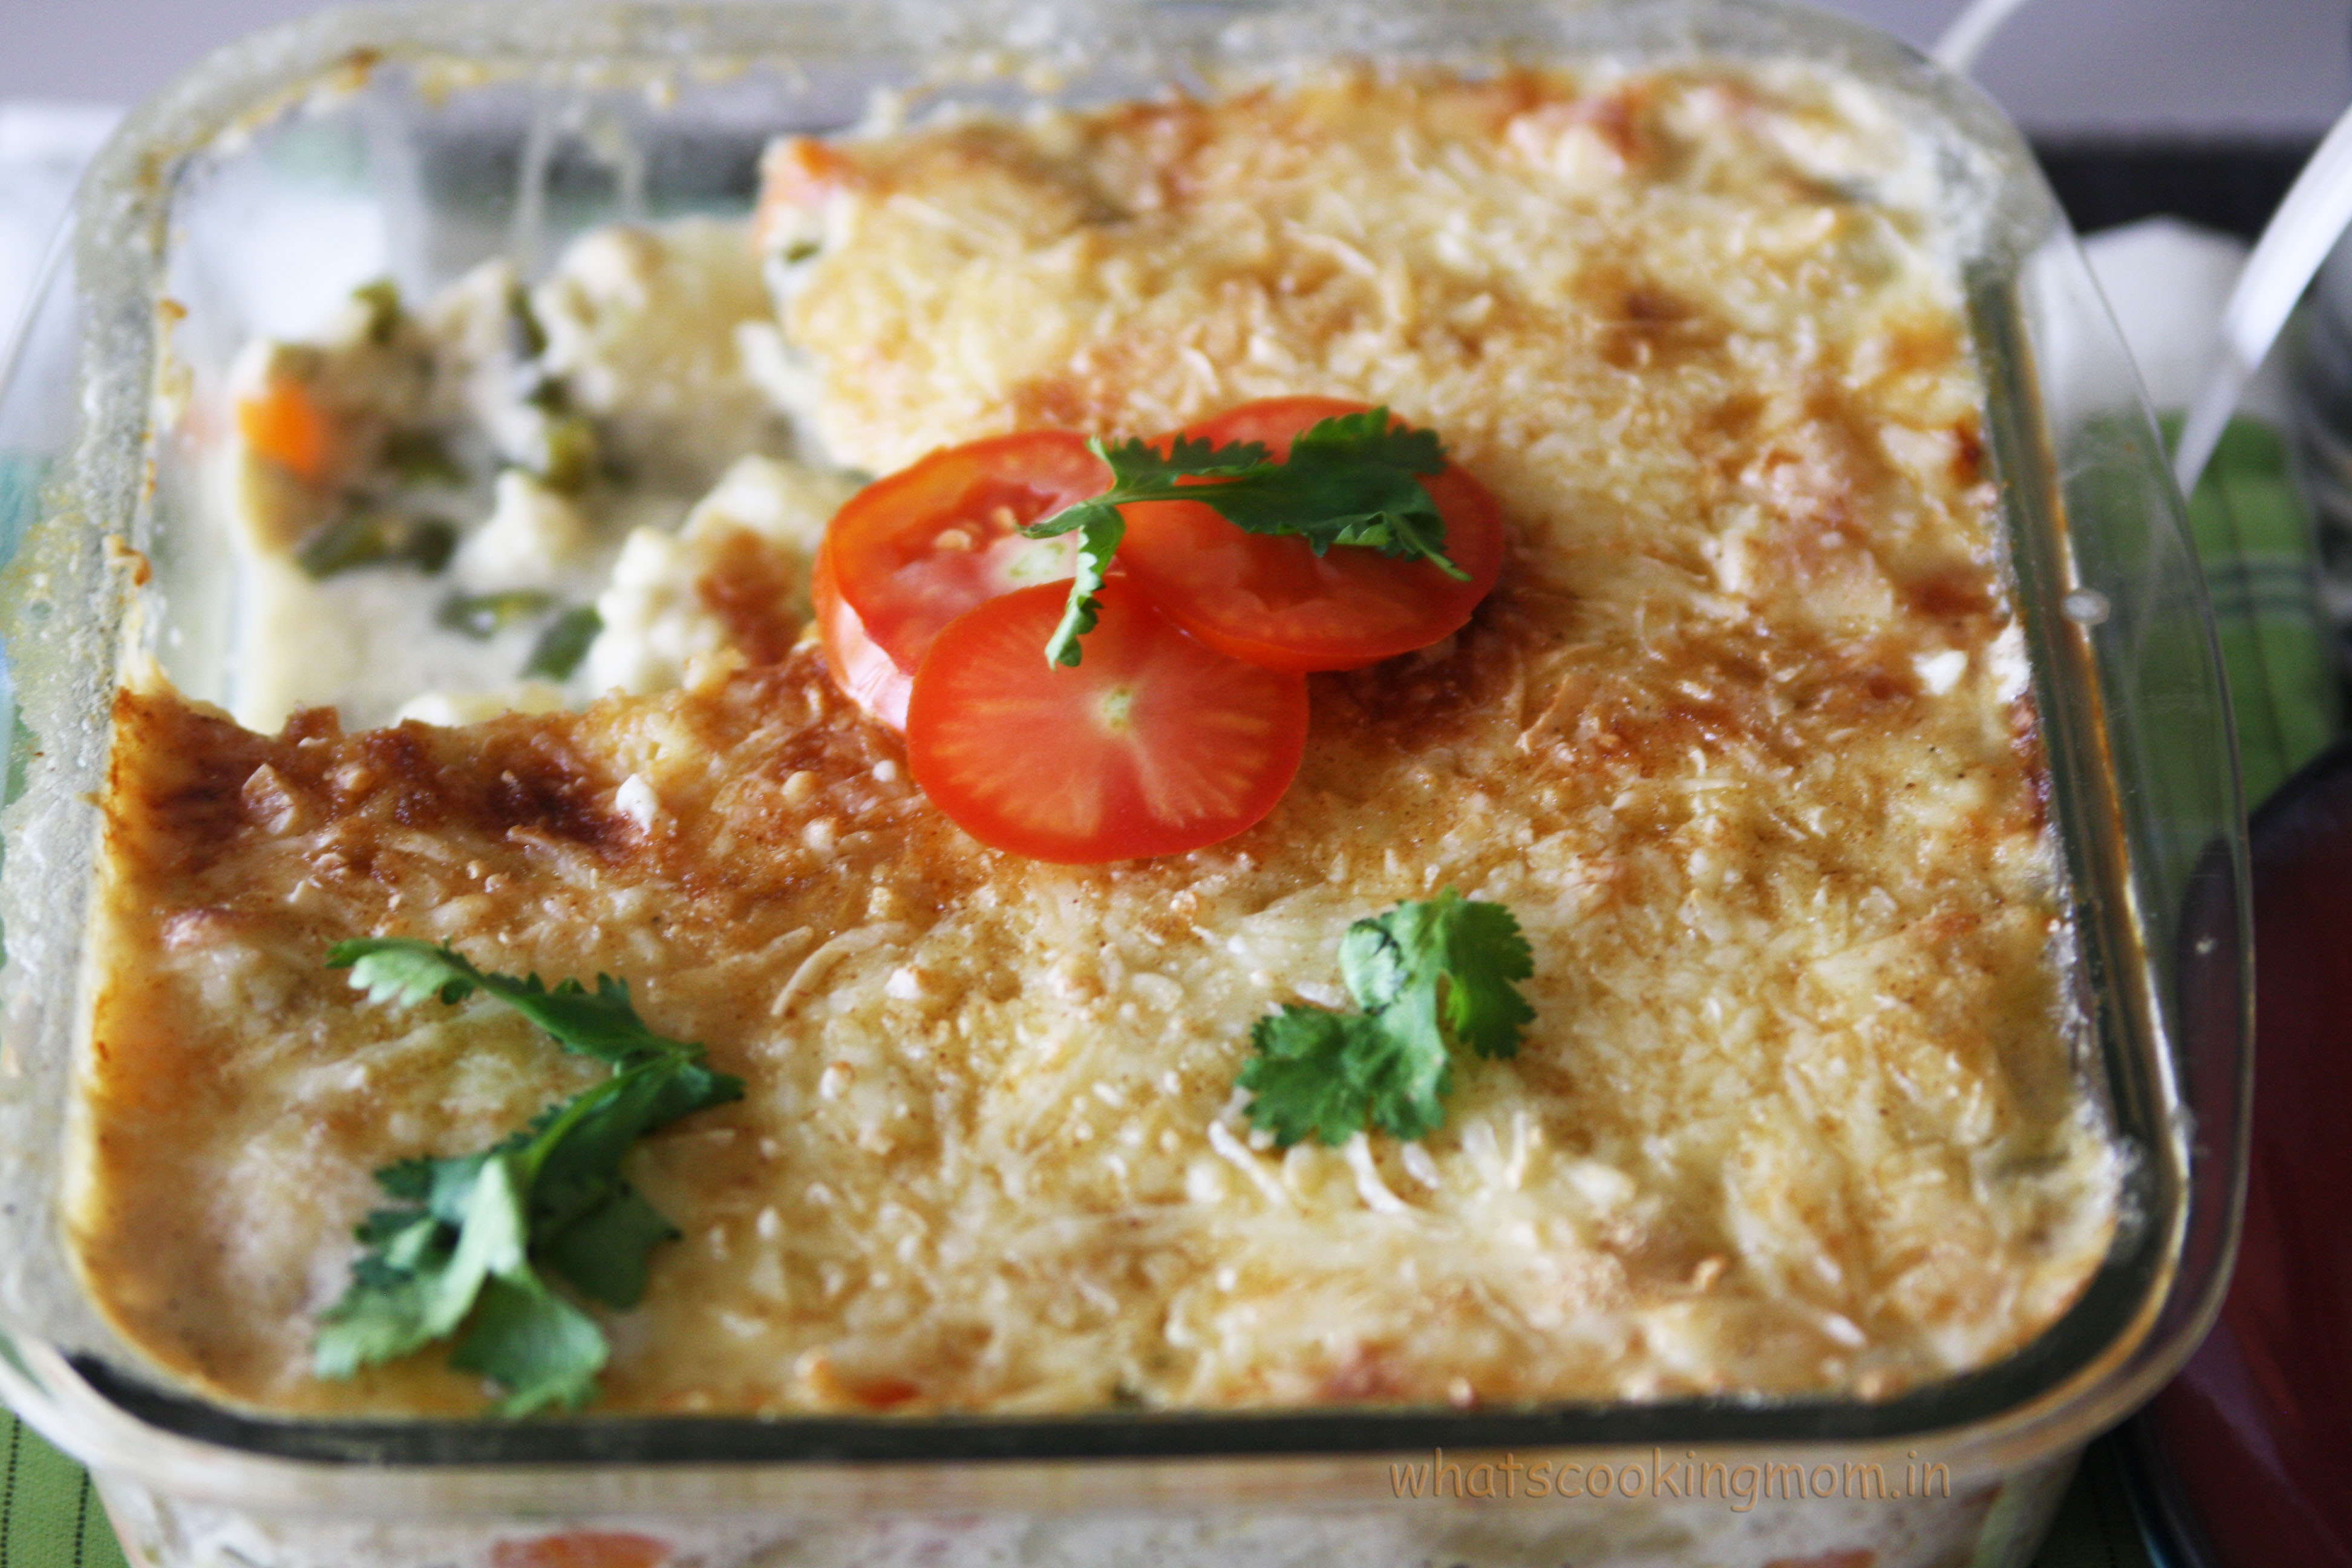 Vegetable au Gratin - whats cooking mom